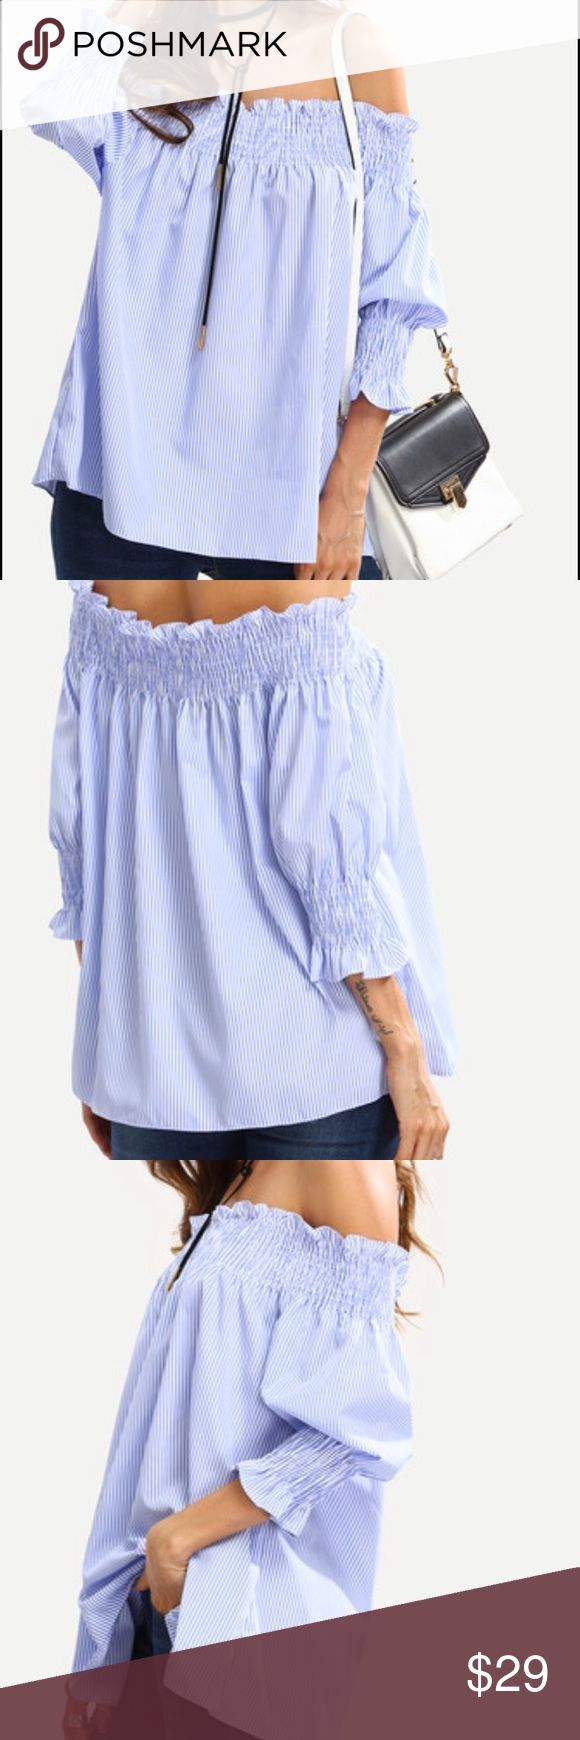 SUPER CUTE BLUE SMOCKED OFF THE SHOULDER TOP ADORABLE  is this cotton & comfy top. Adjustable off the shoulder fit. Good length to tuck in or wear loose. Tops Blouses